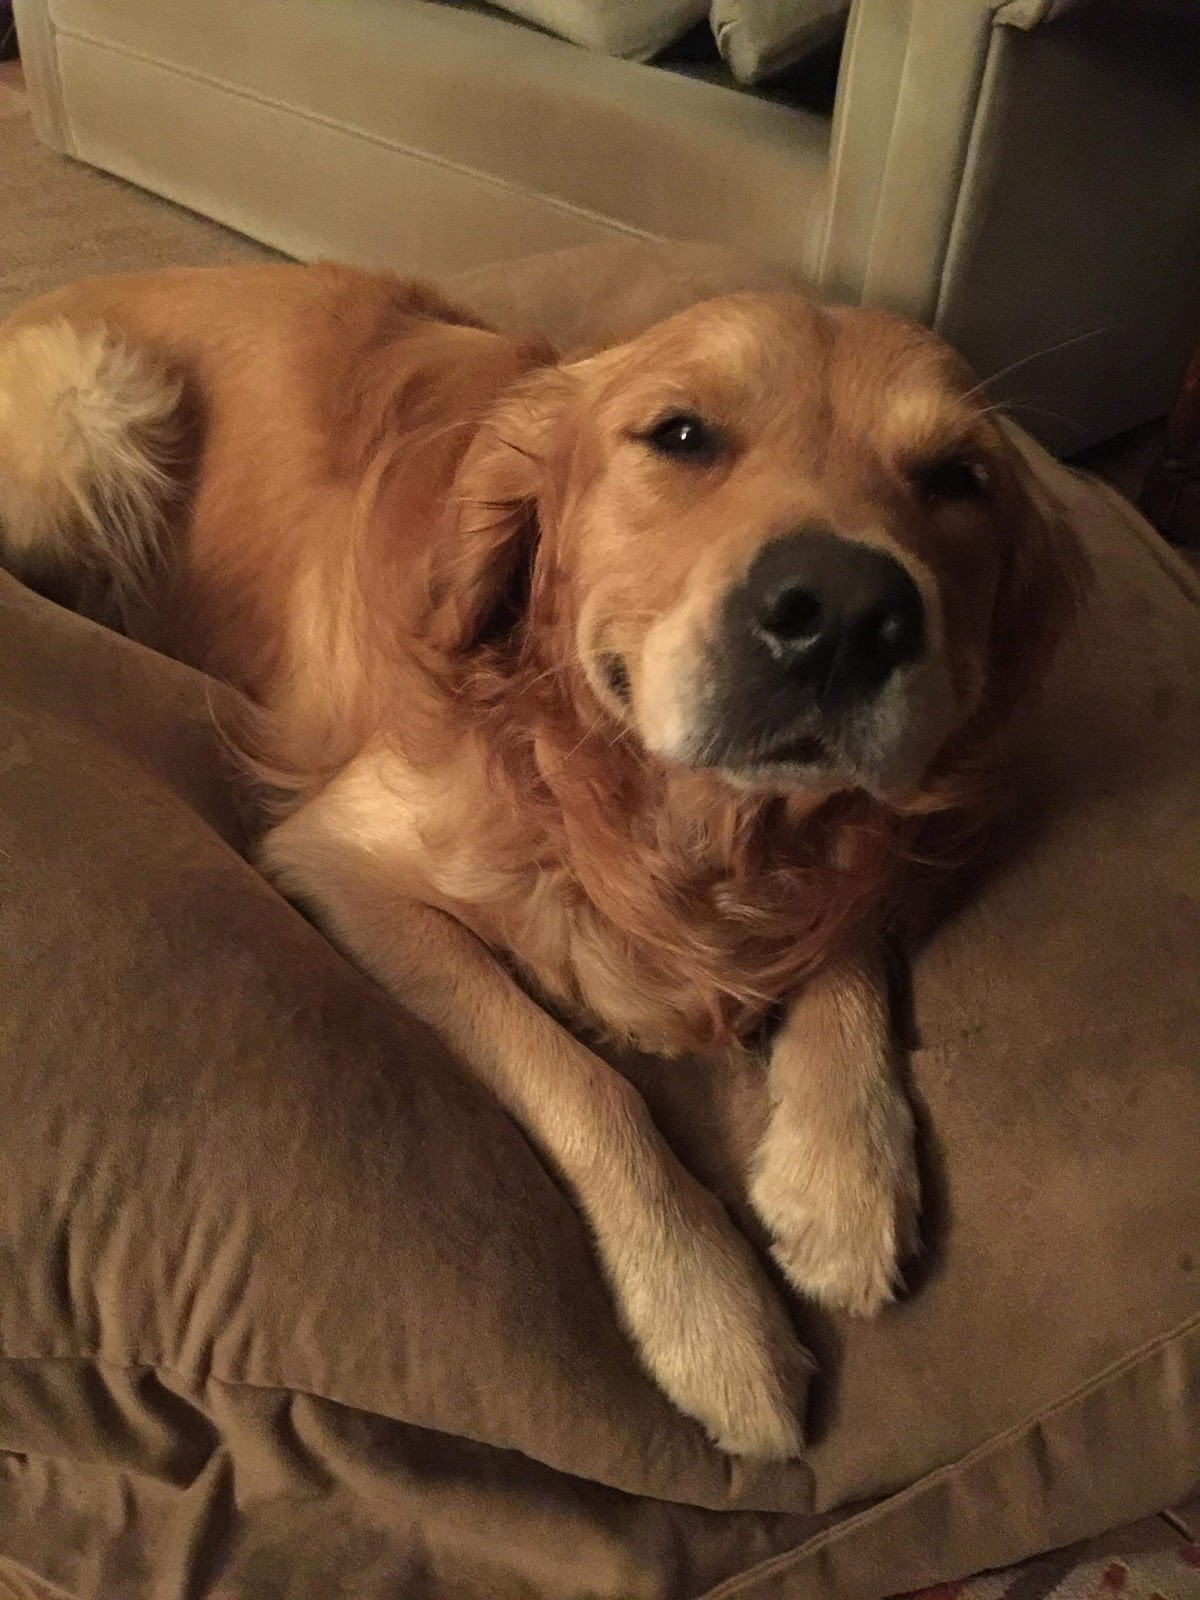 Cute dogs - part 150, best cute dog photos, dog pictures, adorable dog